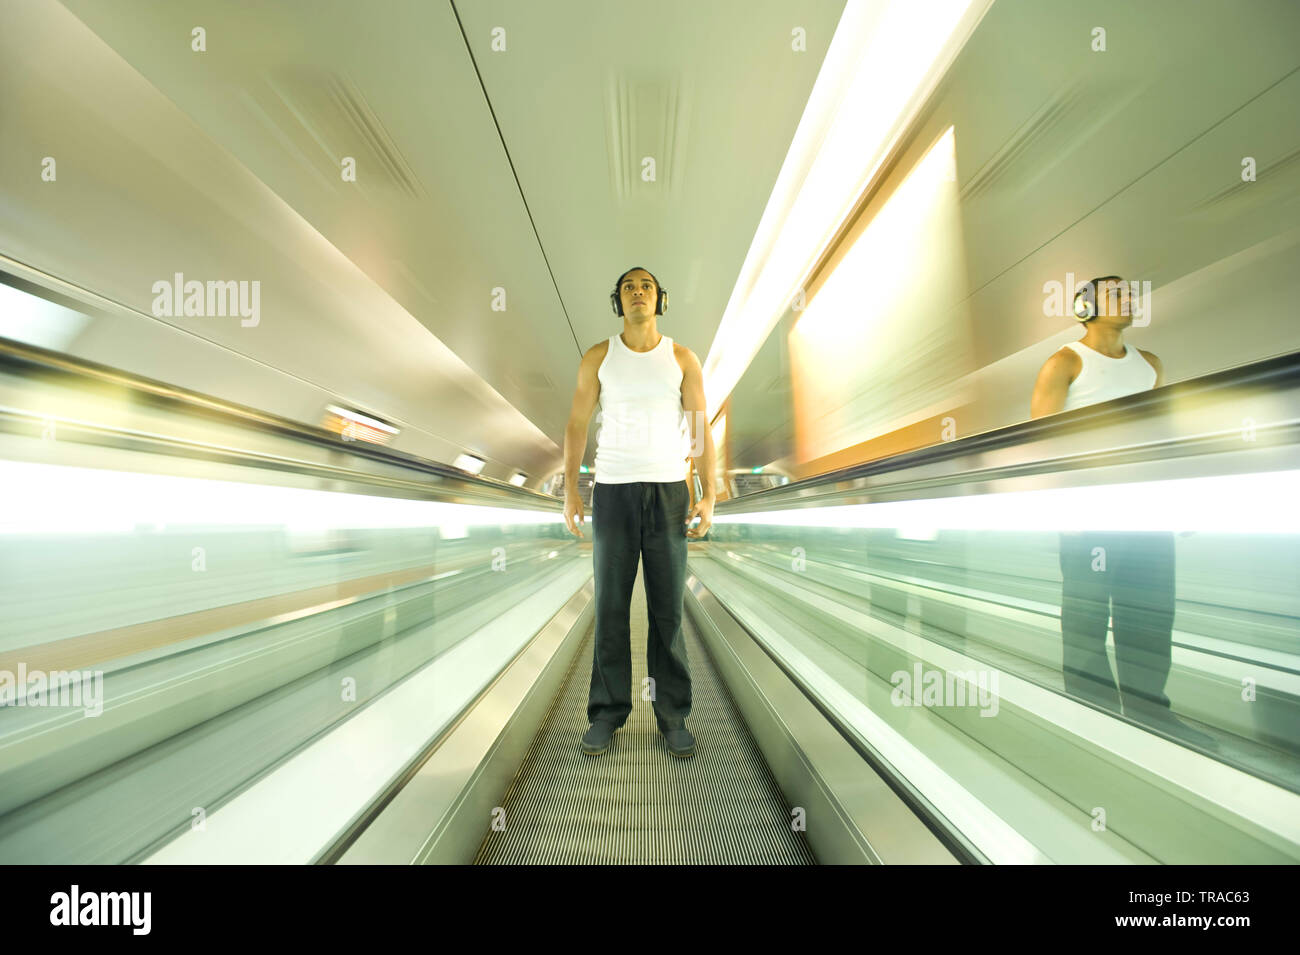 Amazing shot of a modern man standing on a moving escalator wearing headphones and listening to music - Stock Image